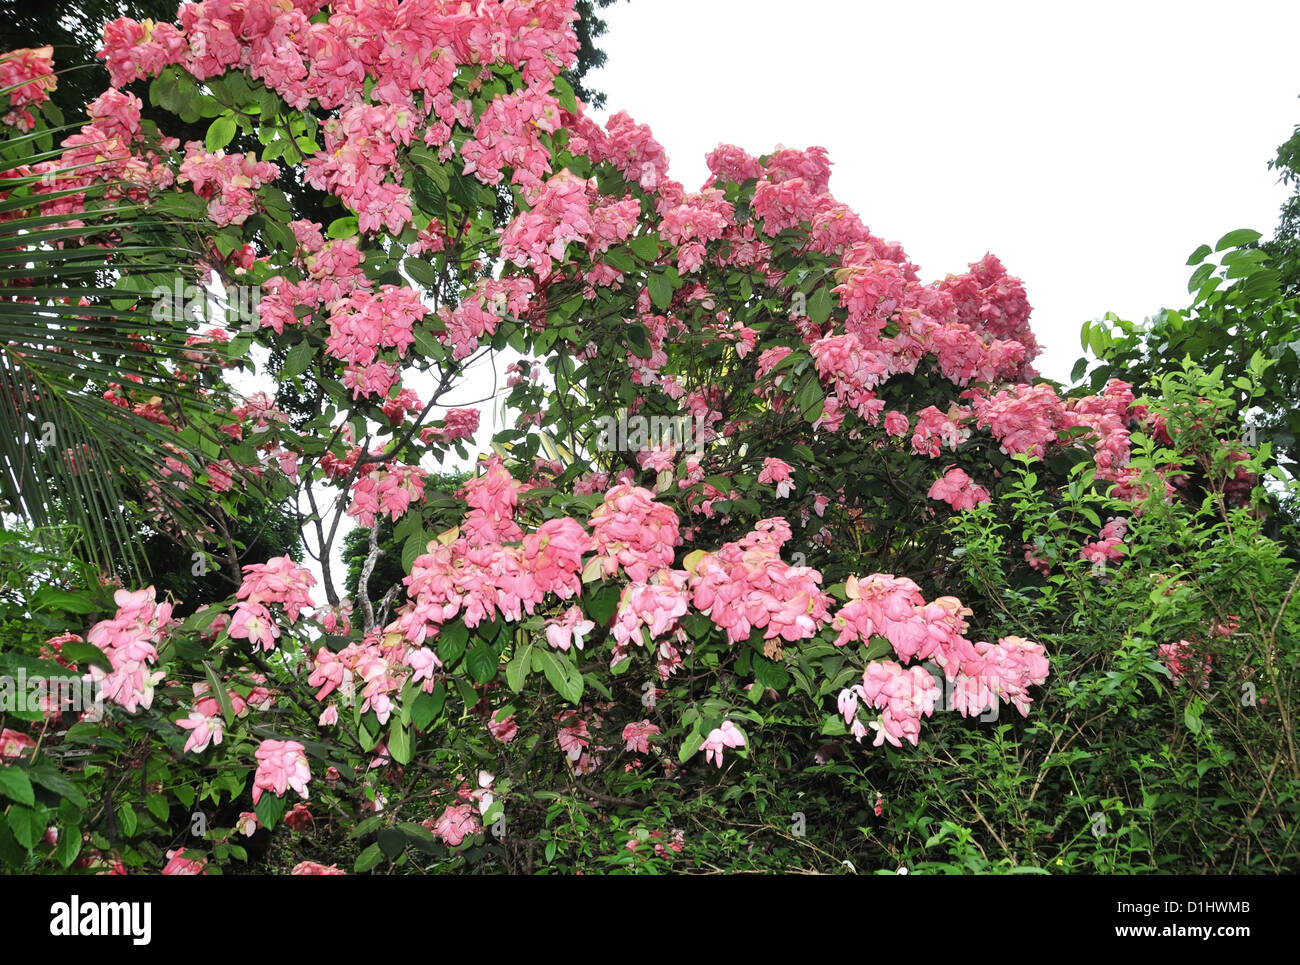 Shrub with large pink flowers standing in a green thicket by the shrub with large pink flowers standing in a green thicket by the path to the annandale waterfall grenada west indies mightylinksfo